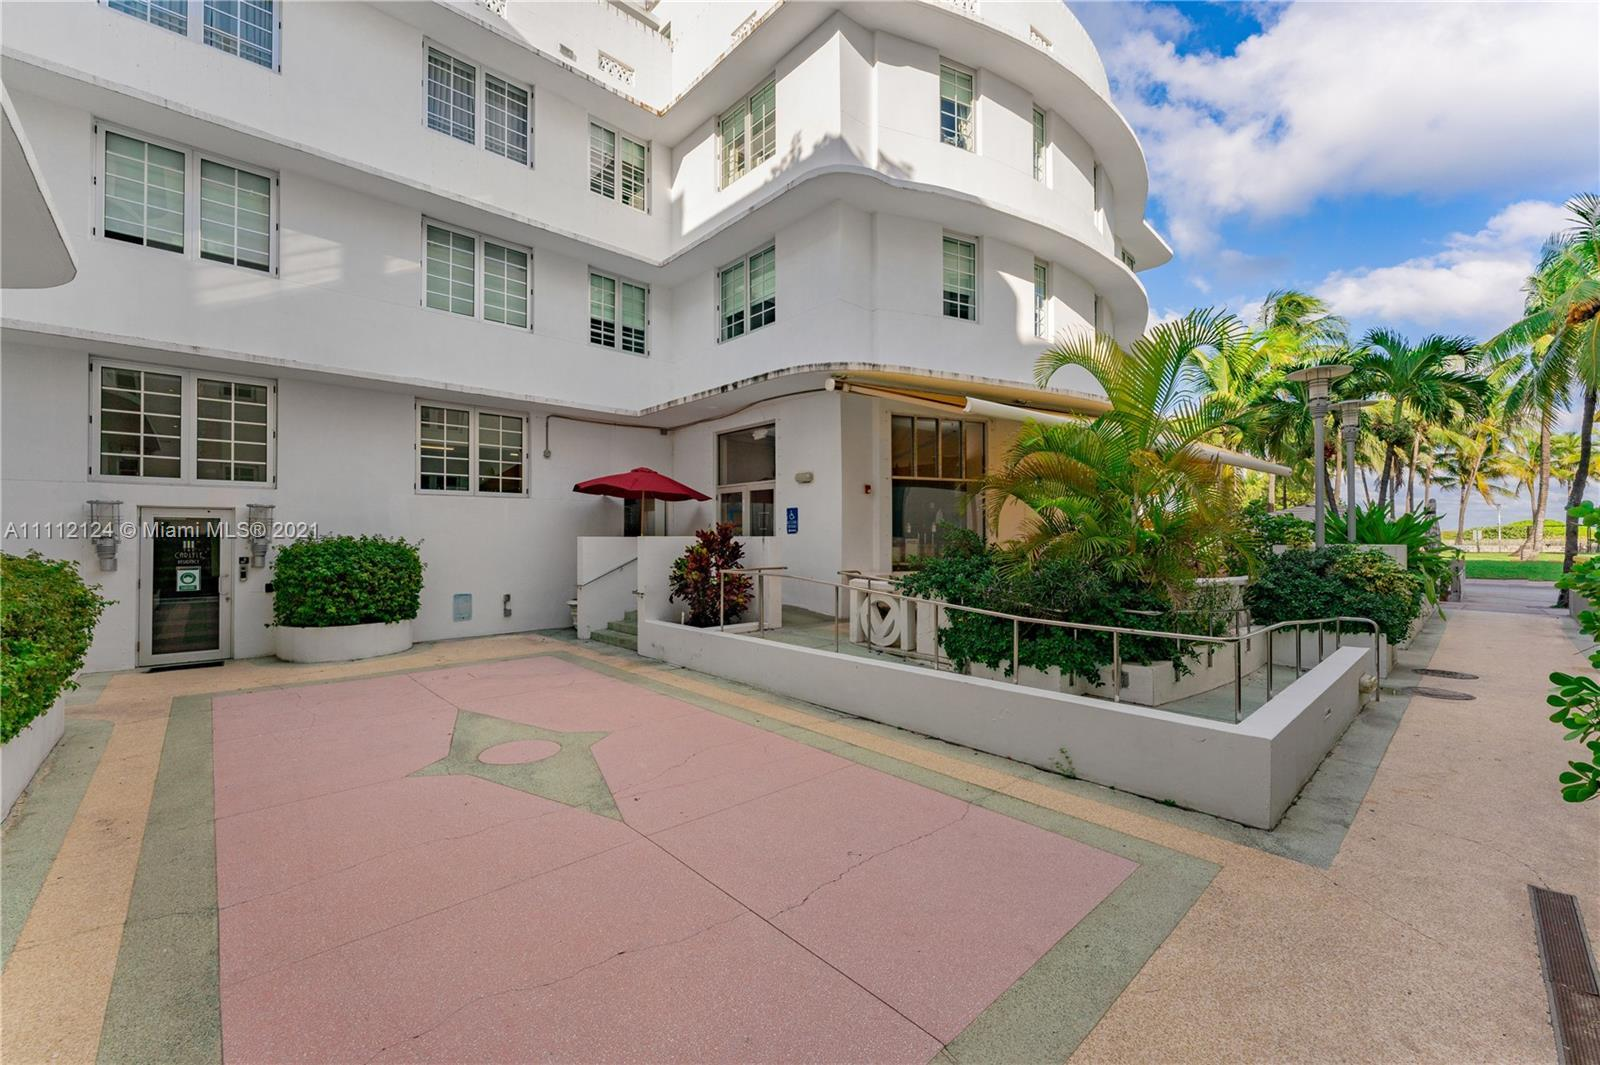 Investor-friendly building that allows daily rentals on the iconic Ocean Drive in Miami Beach. This